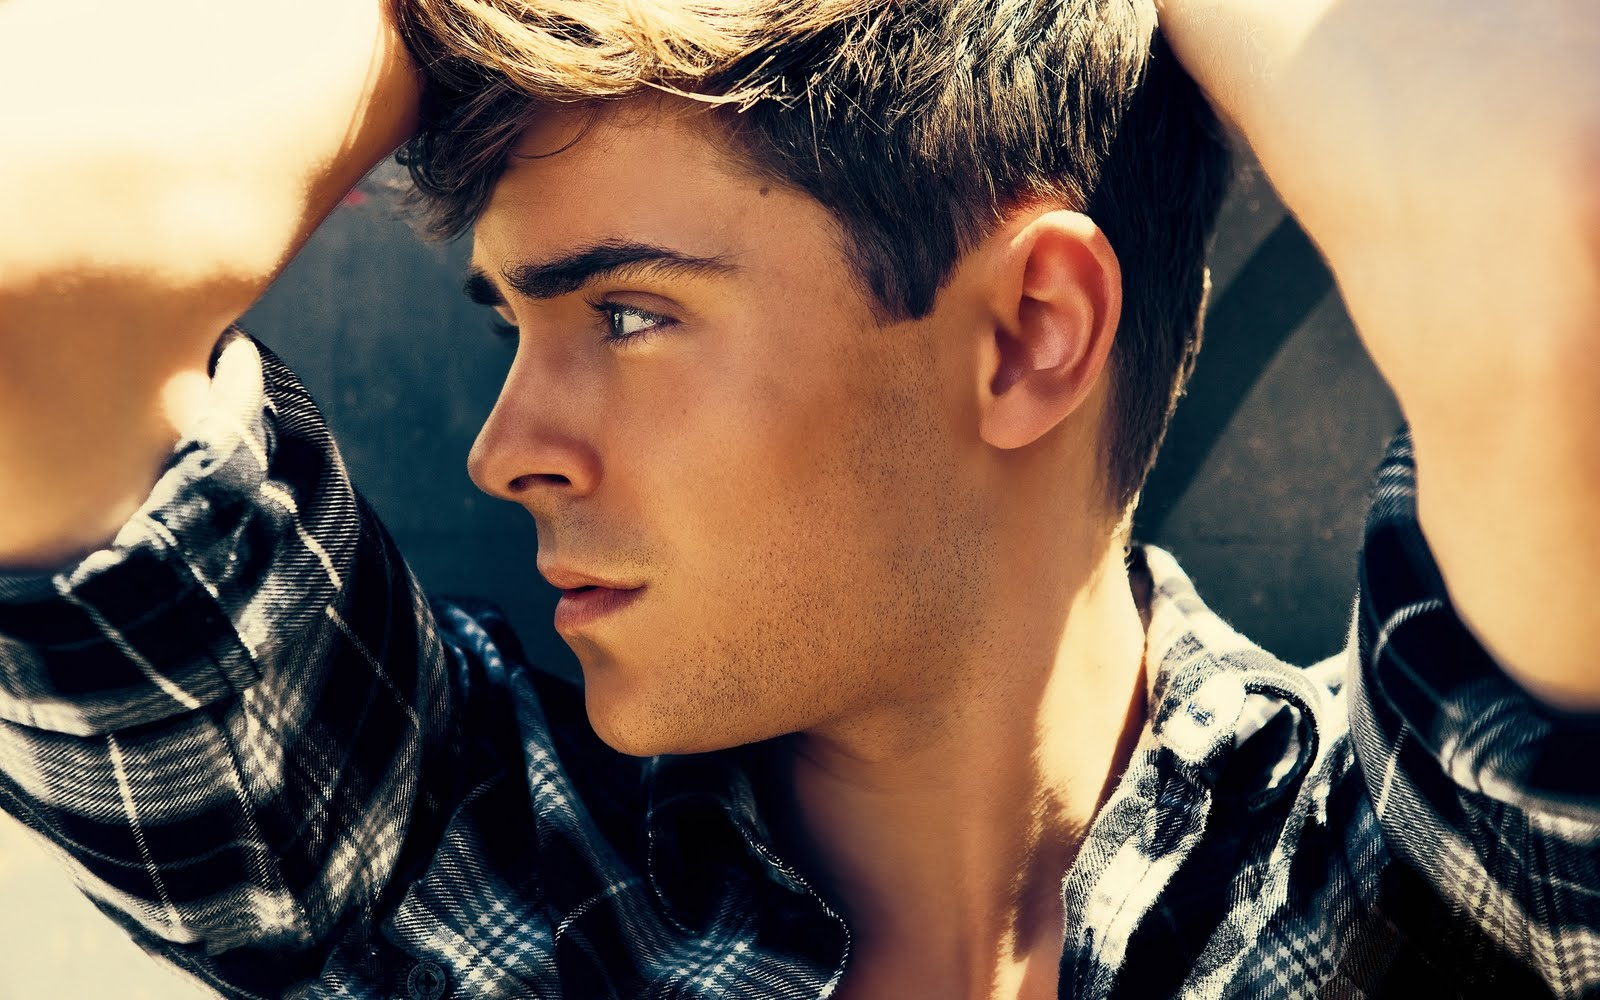 L Hairstyle: Hairstyles For Men: Zac Efron Hairstyles Are Becoming Popular